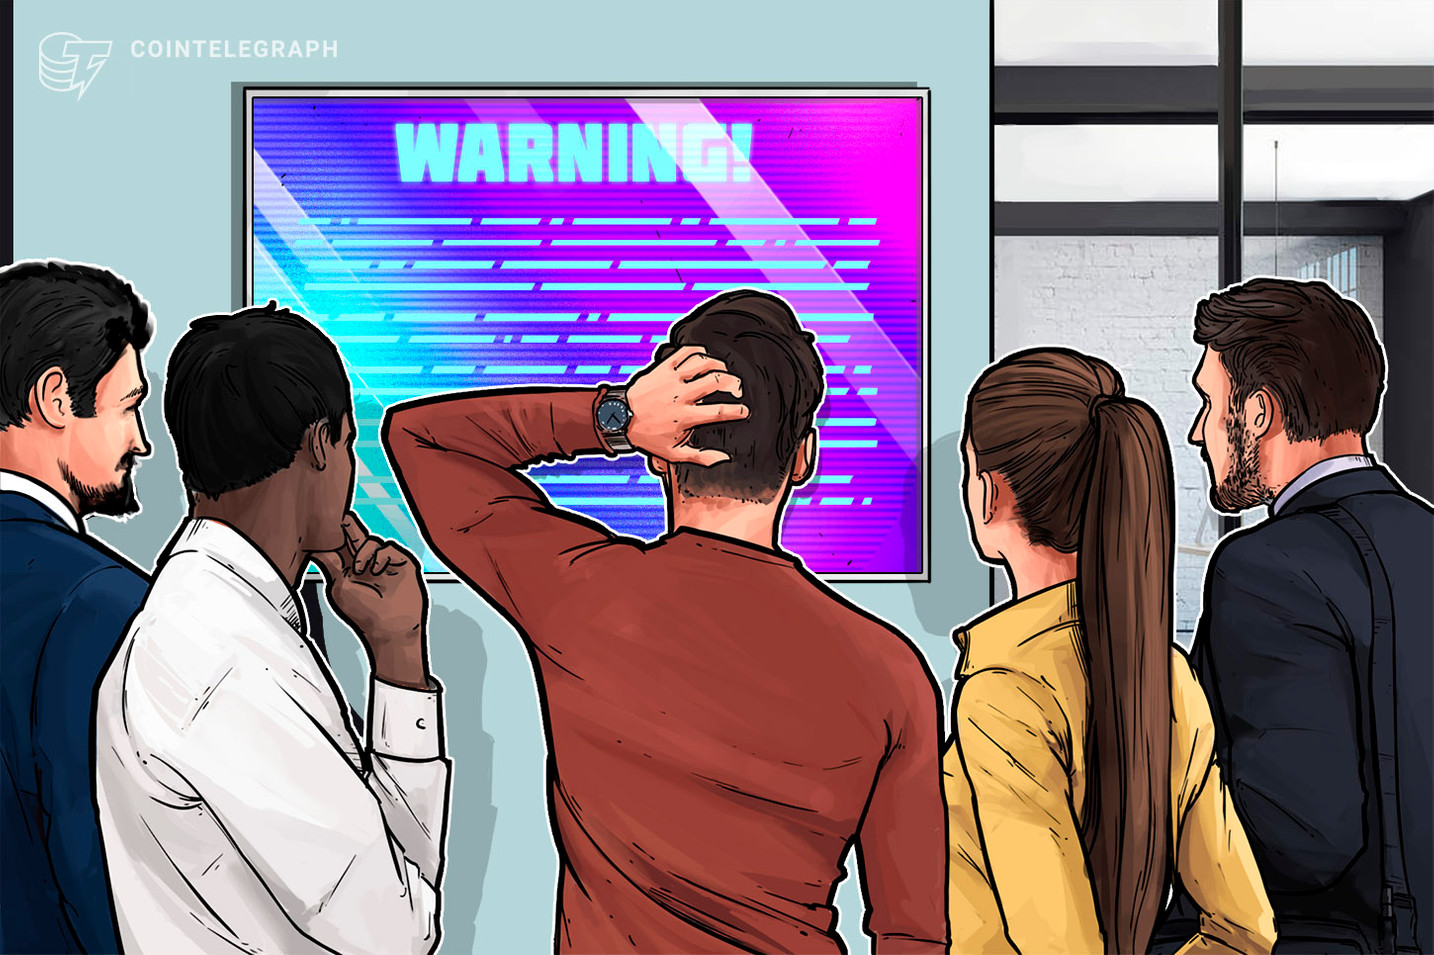 Swedish regulators warn consumers against crypto as markets tumble